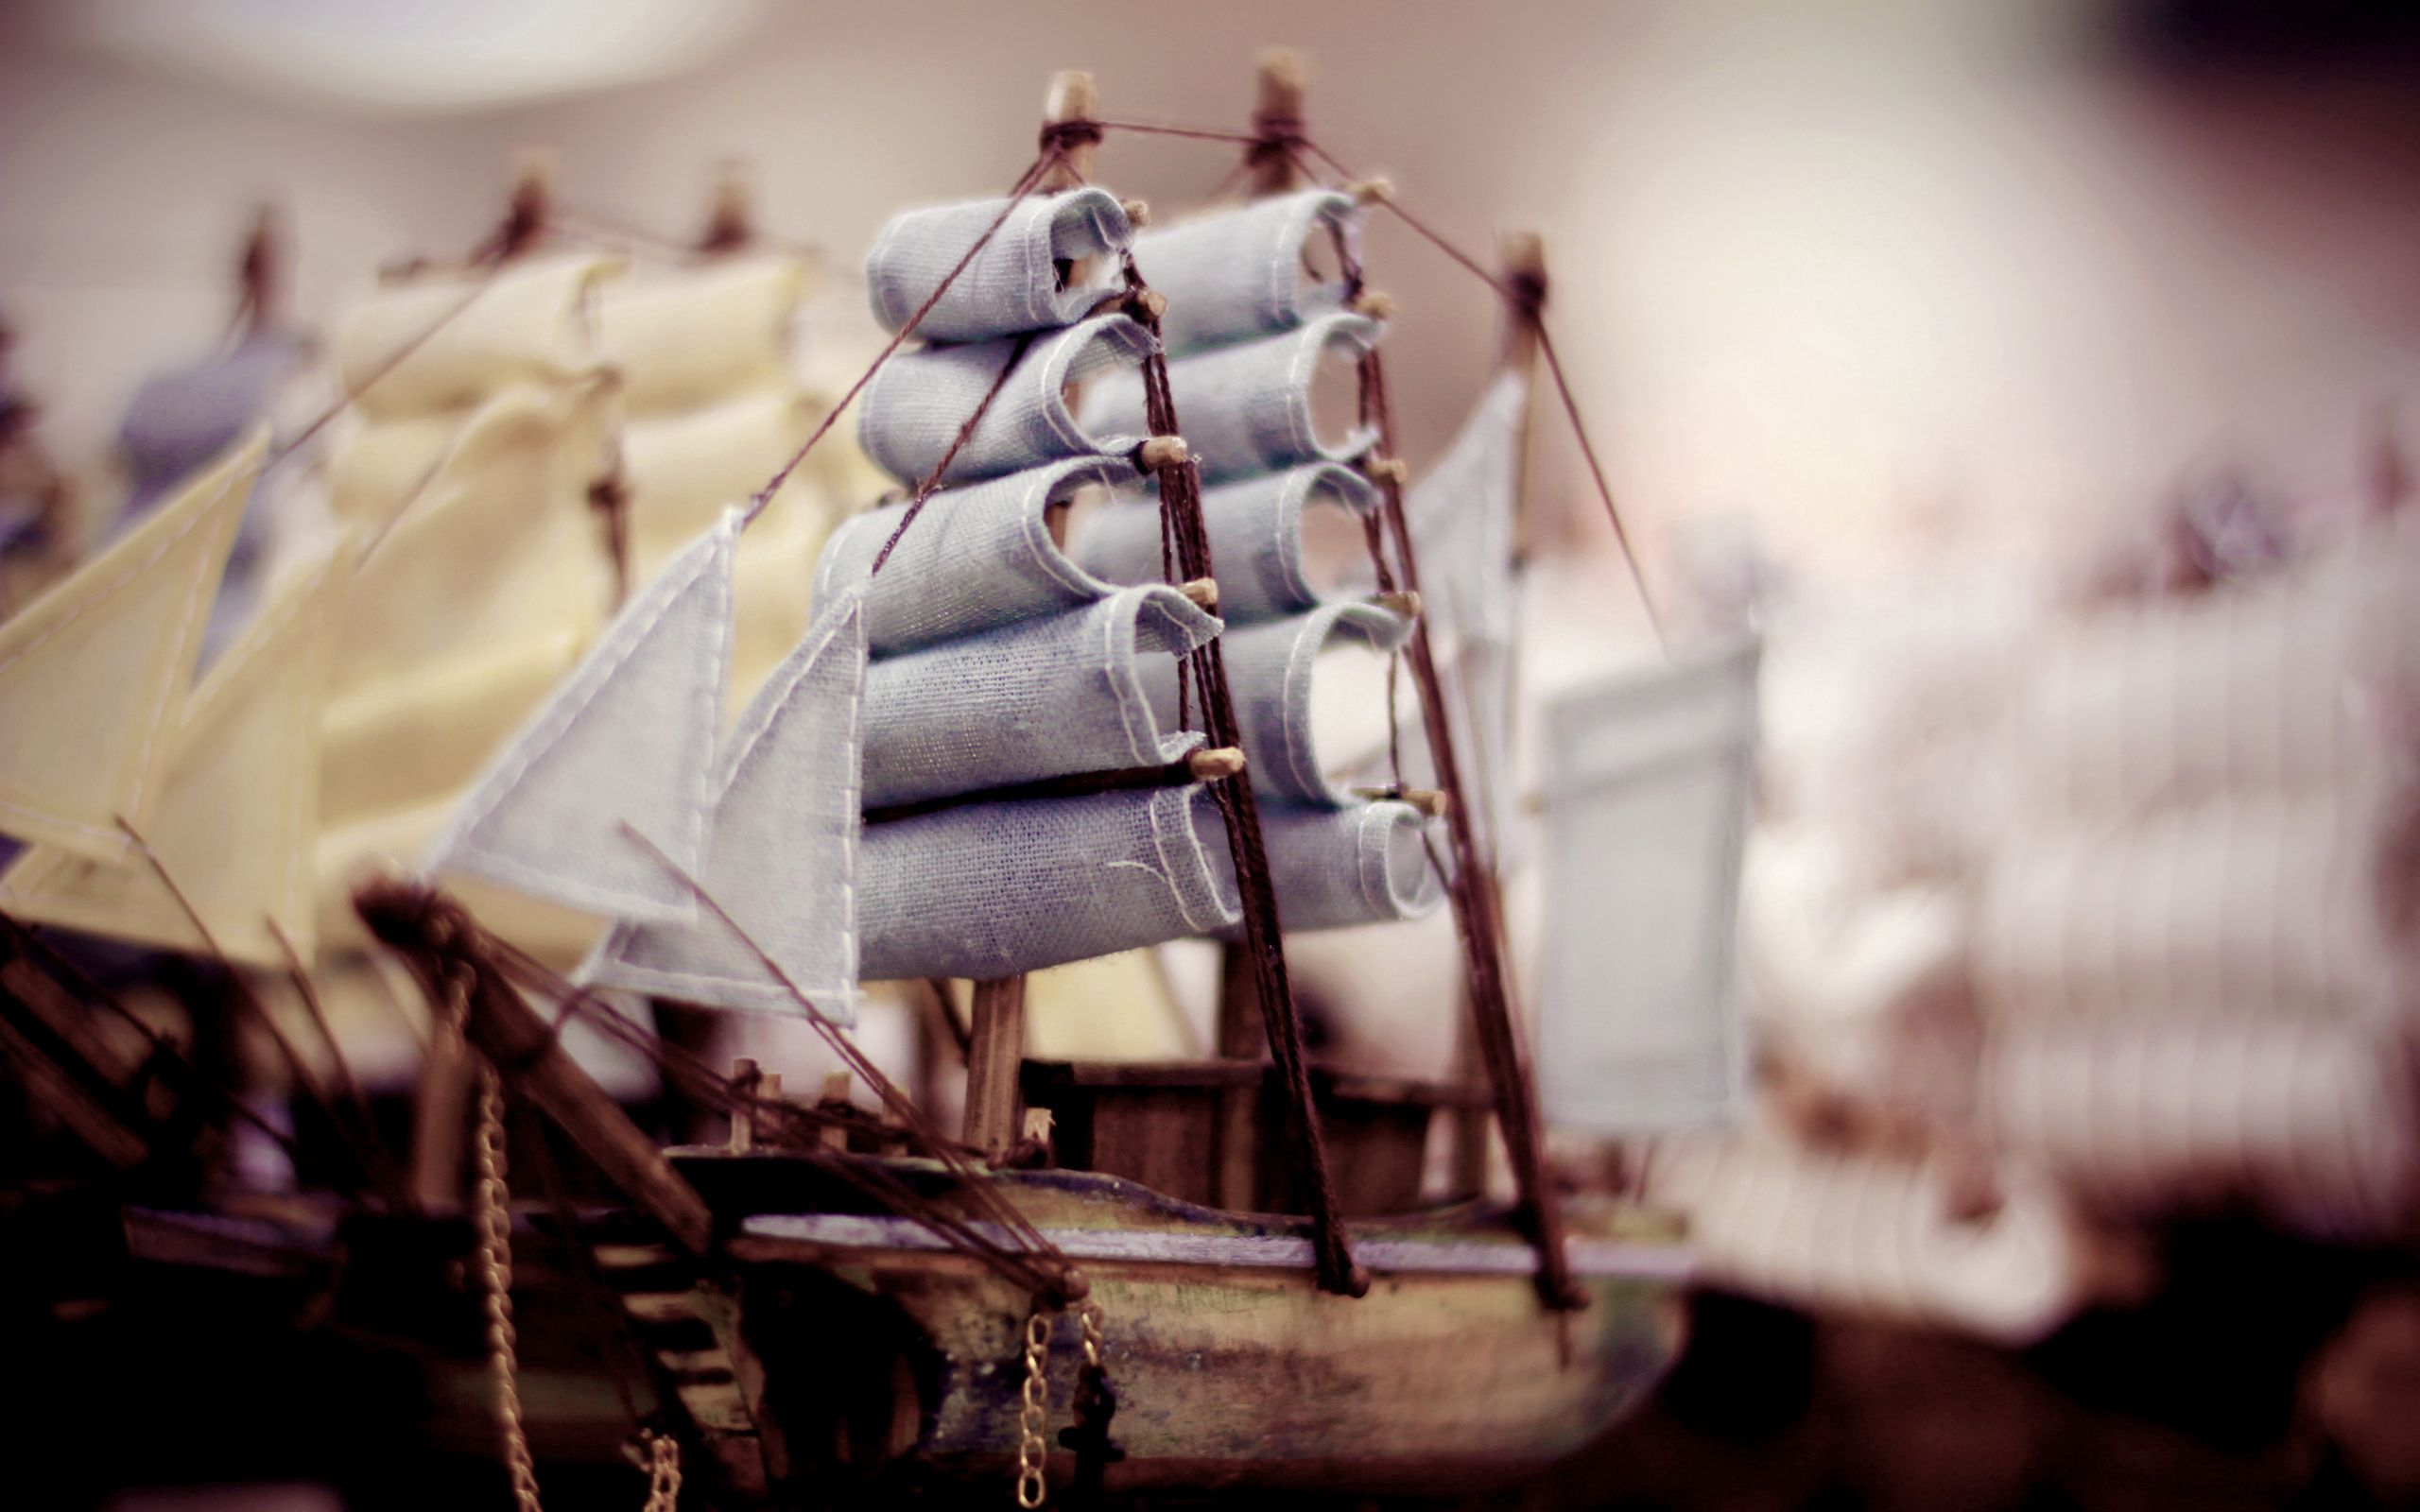 146023 download wallpaper Macro, Wood, Wooden, Toy, Sail, Sails, Ship, Vessel, Nautilus screensavers and pictures for free